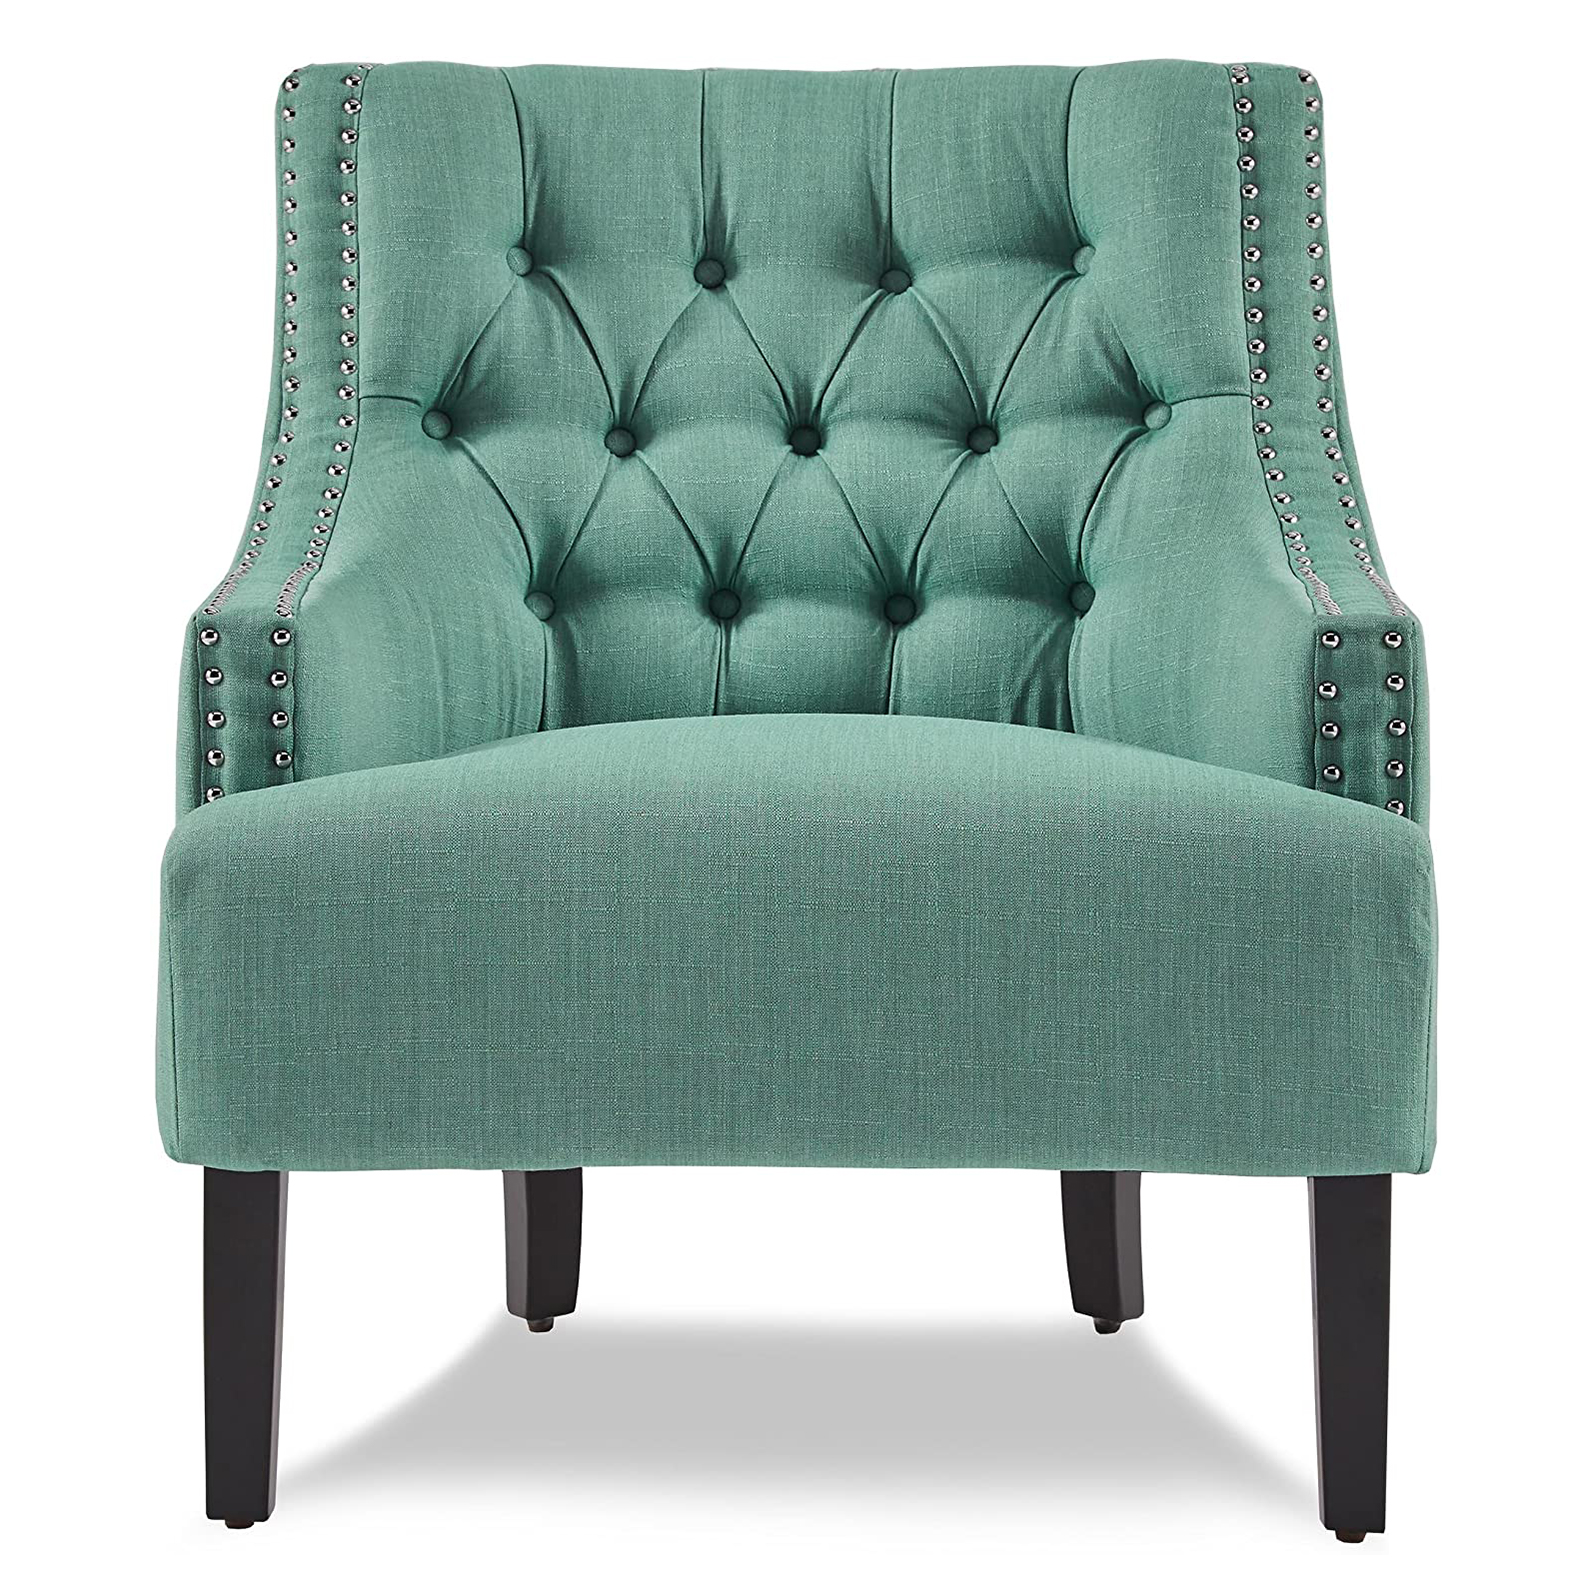 Homelegance Upholstered Diamond Tufted Accent Chair 18